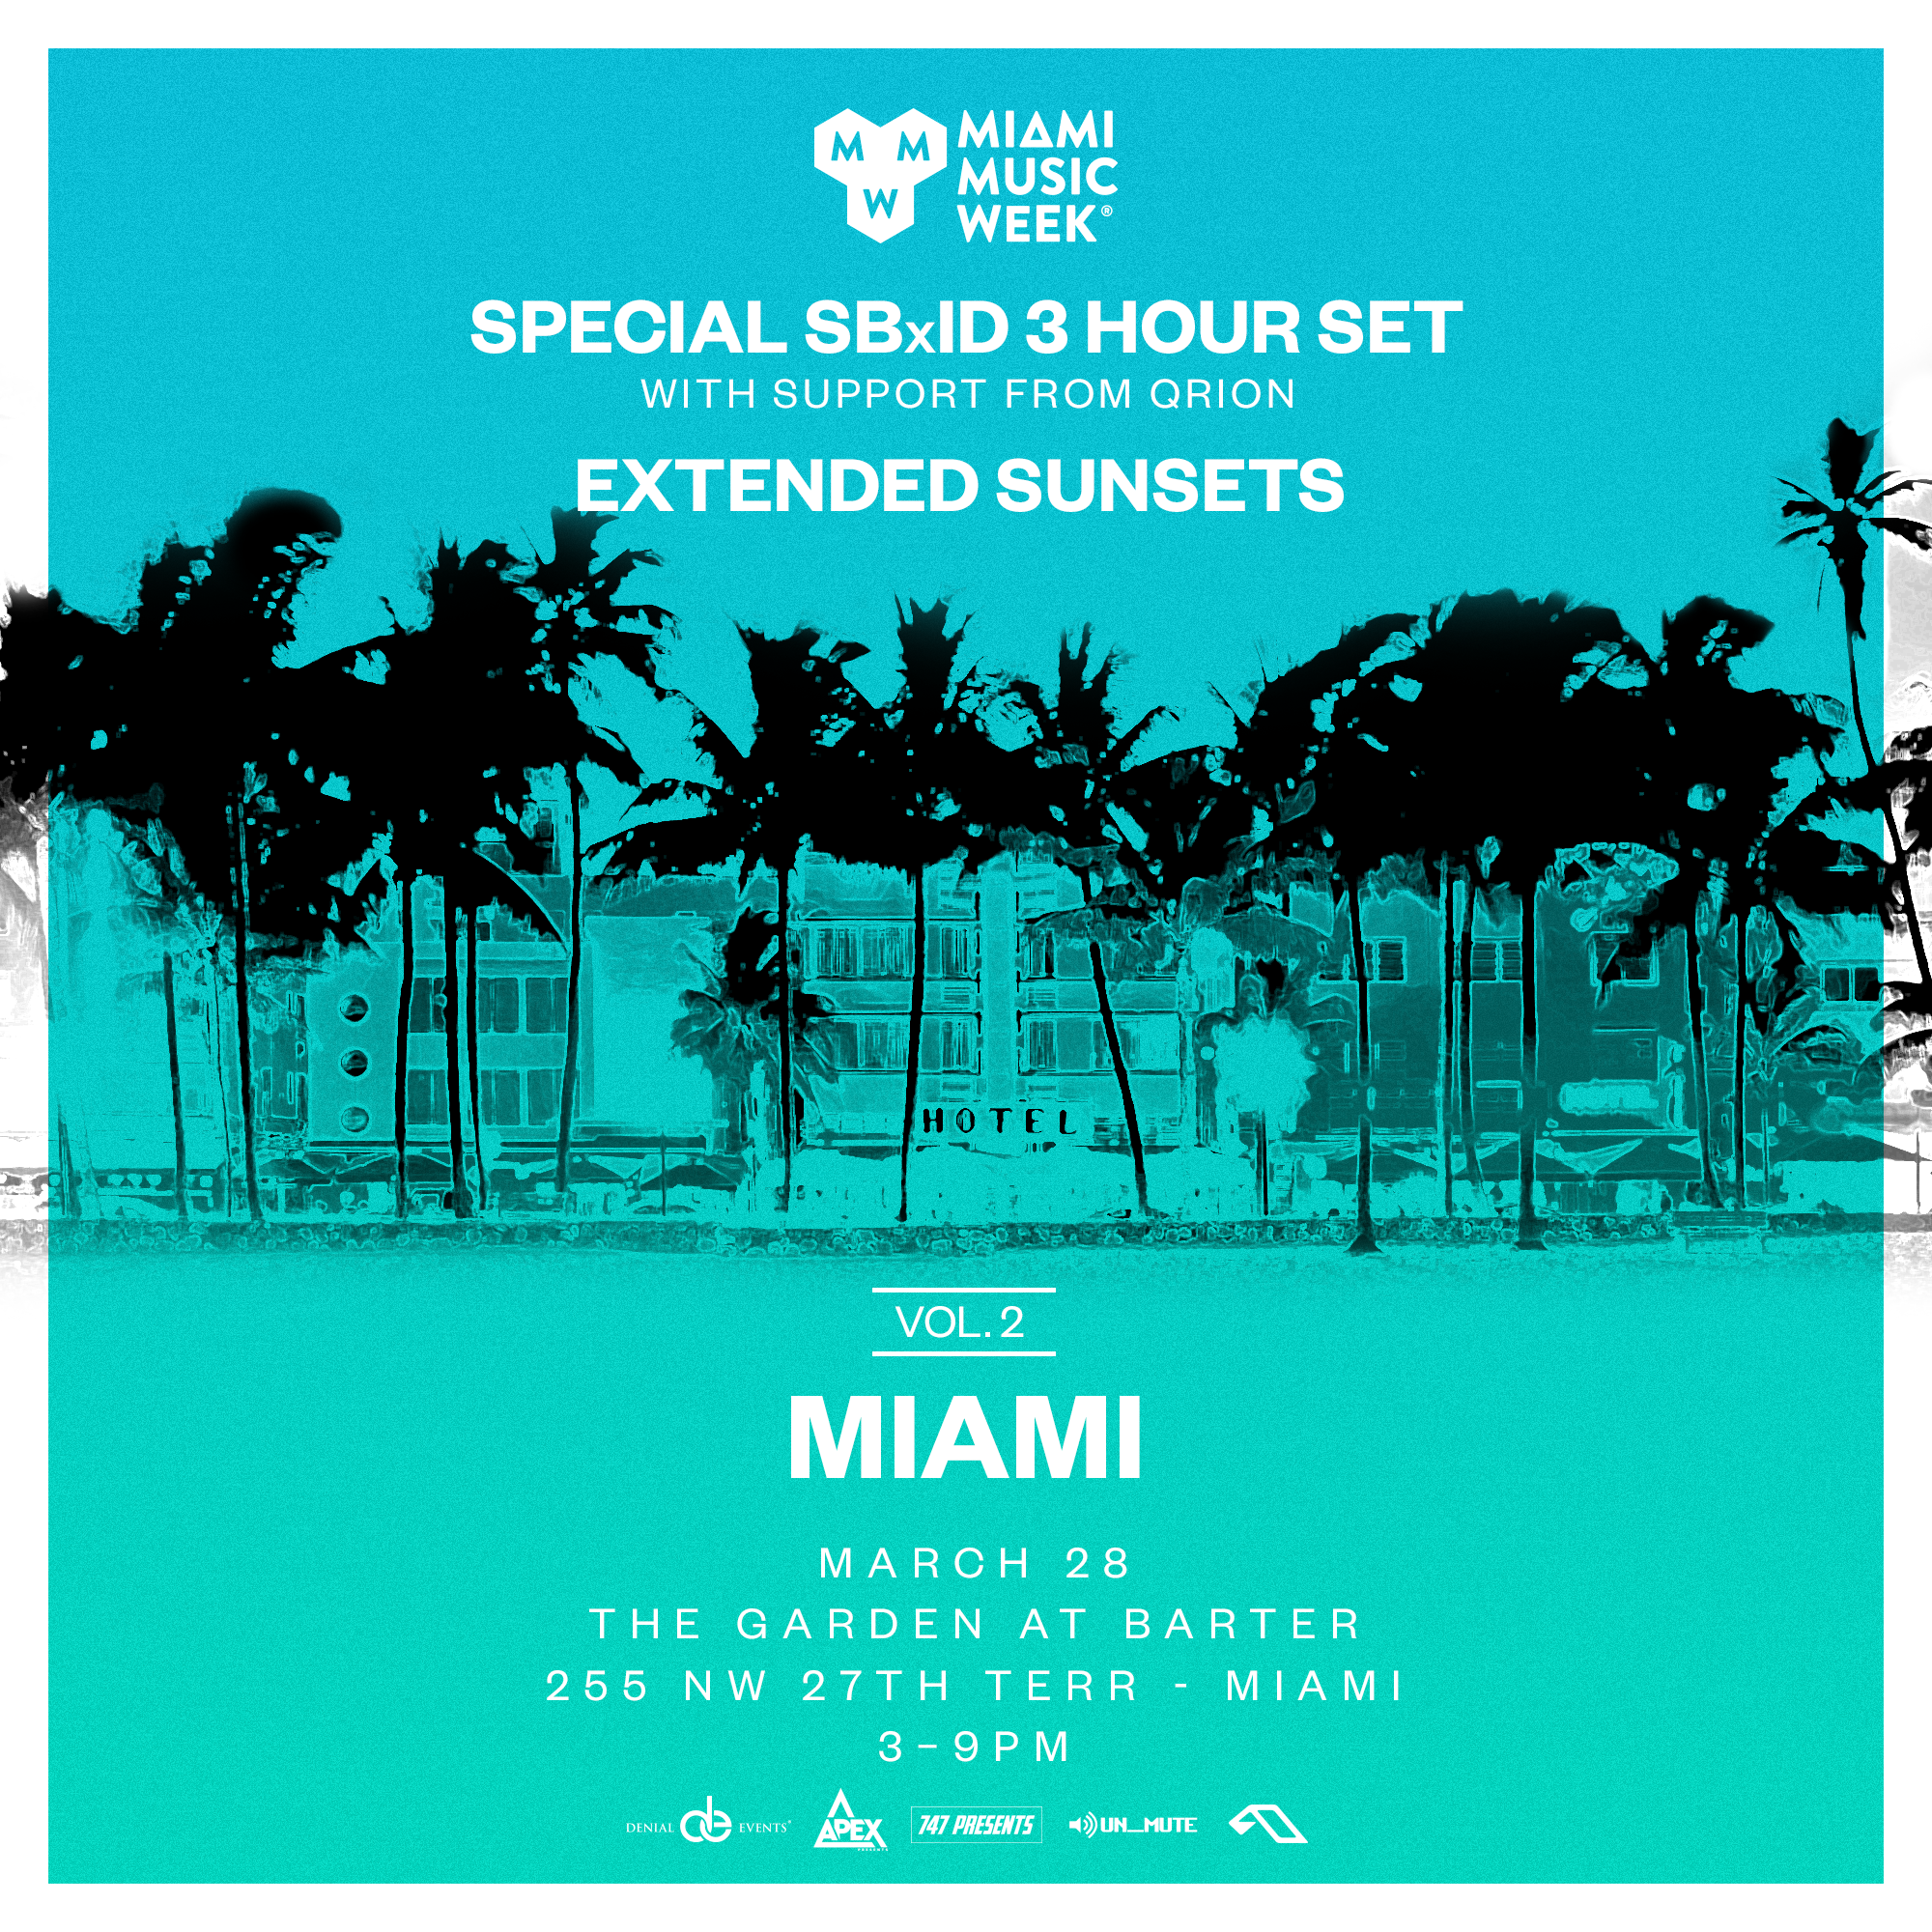 Extended Sunsets Vol. 2 - Miami Image